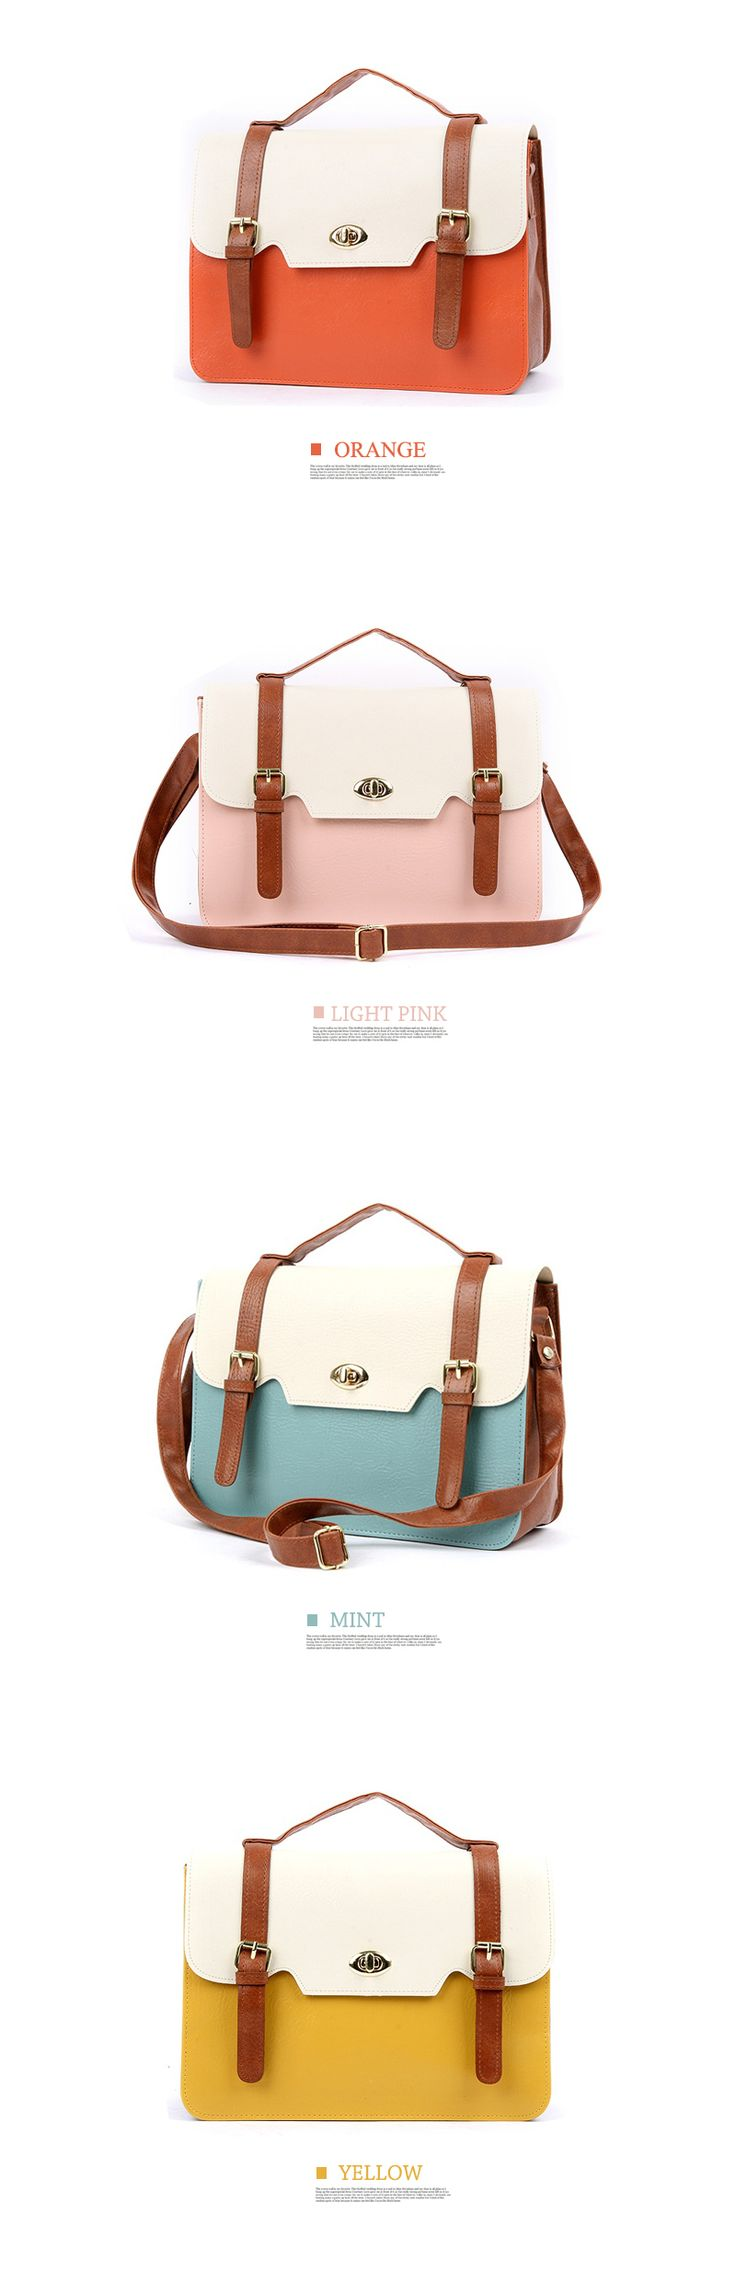 New Women Girl Korea Style Square Handbag Cross Body Shoulder Satchel Bags WoW! So beautiful bags 38.5$!